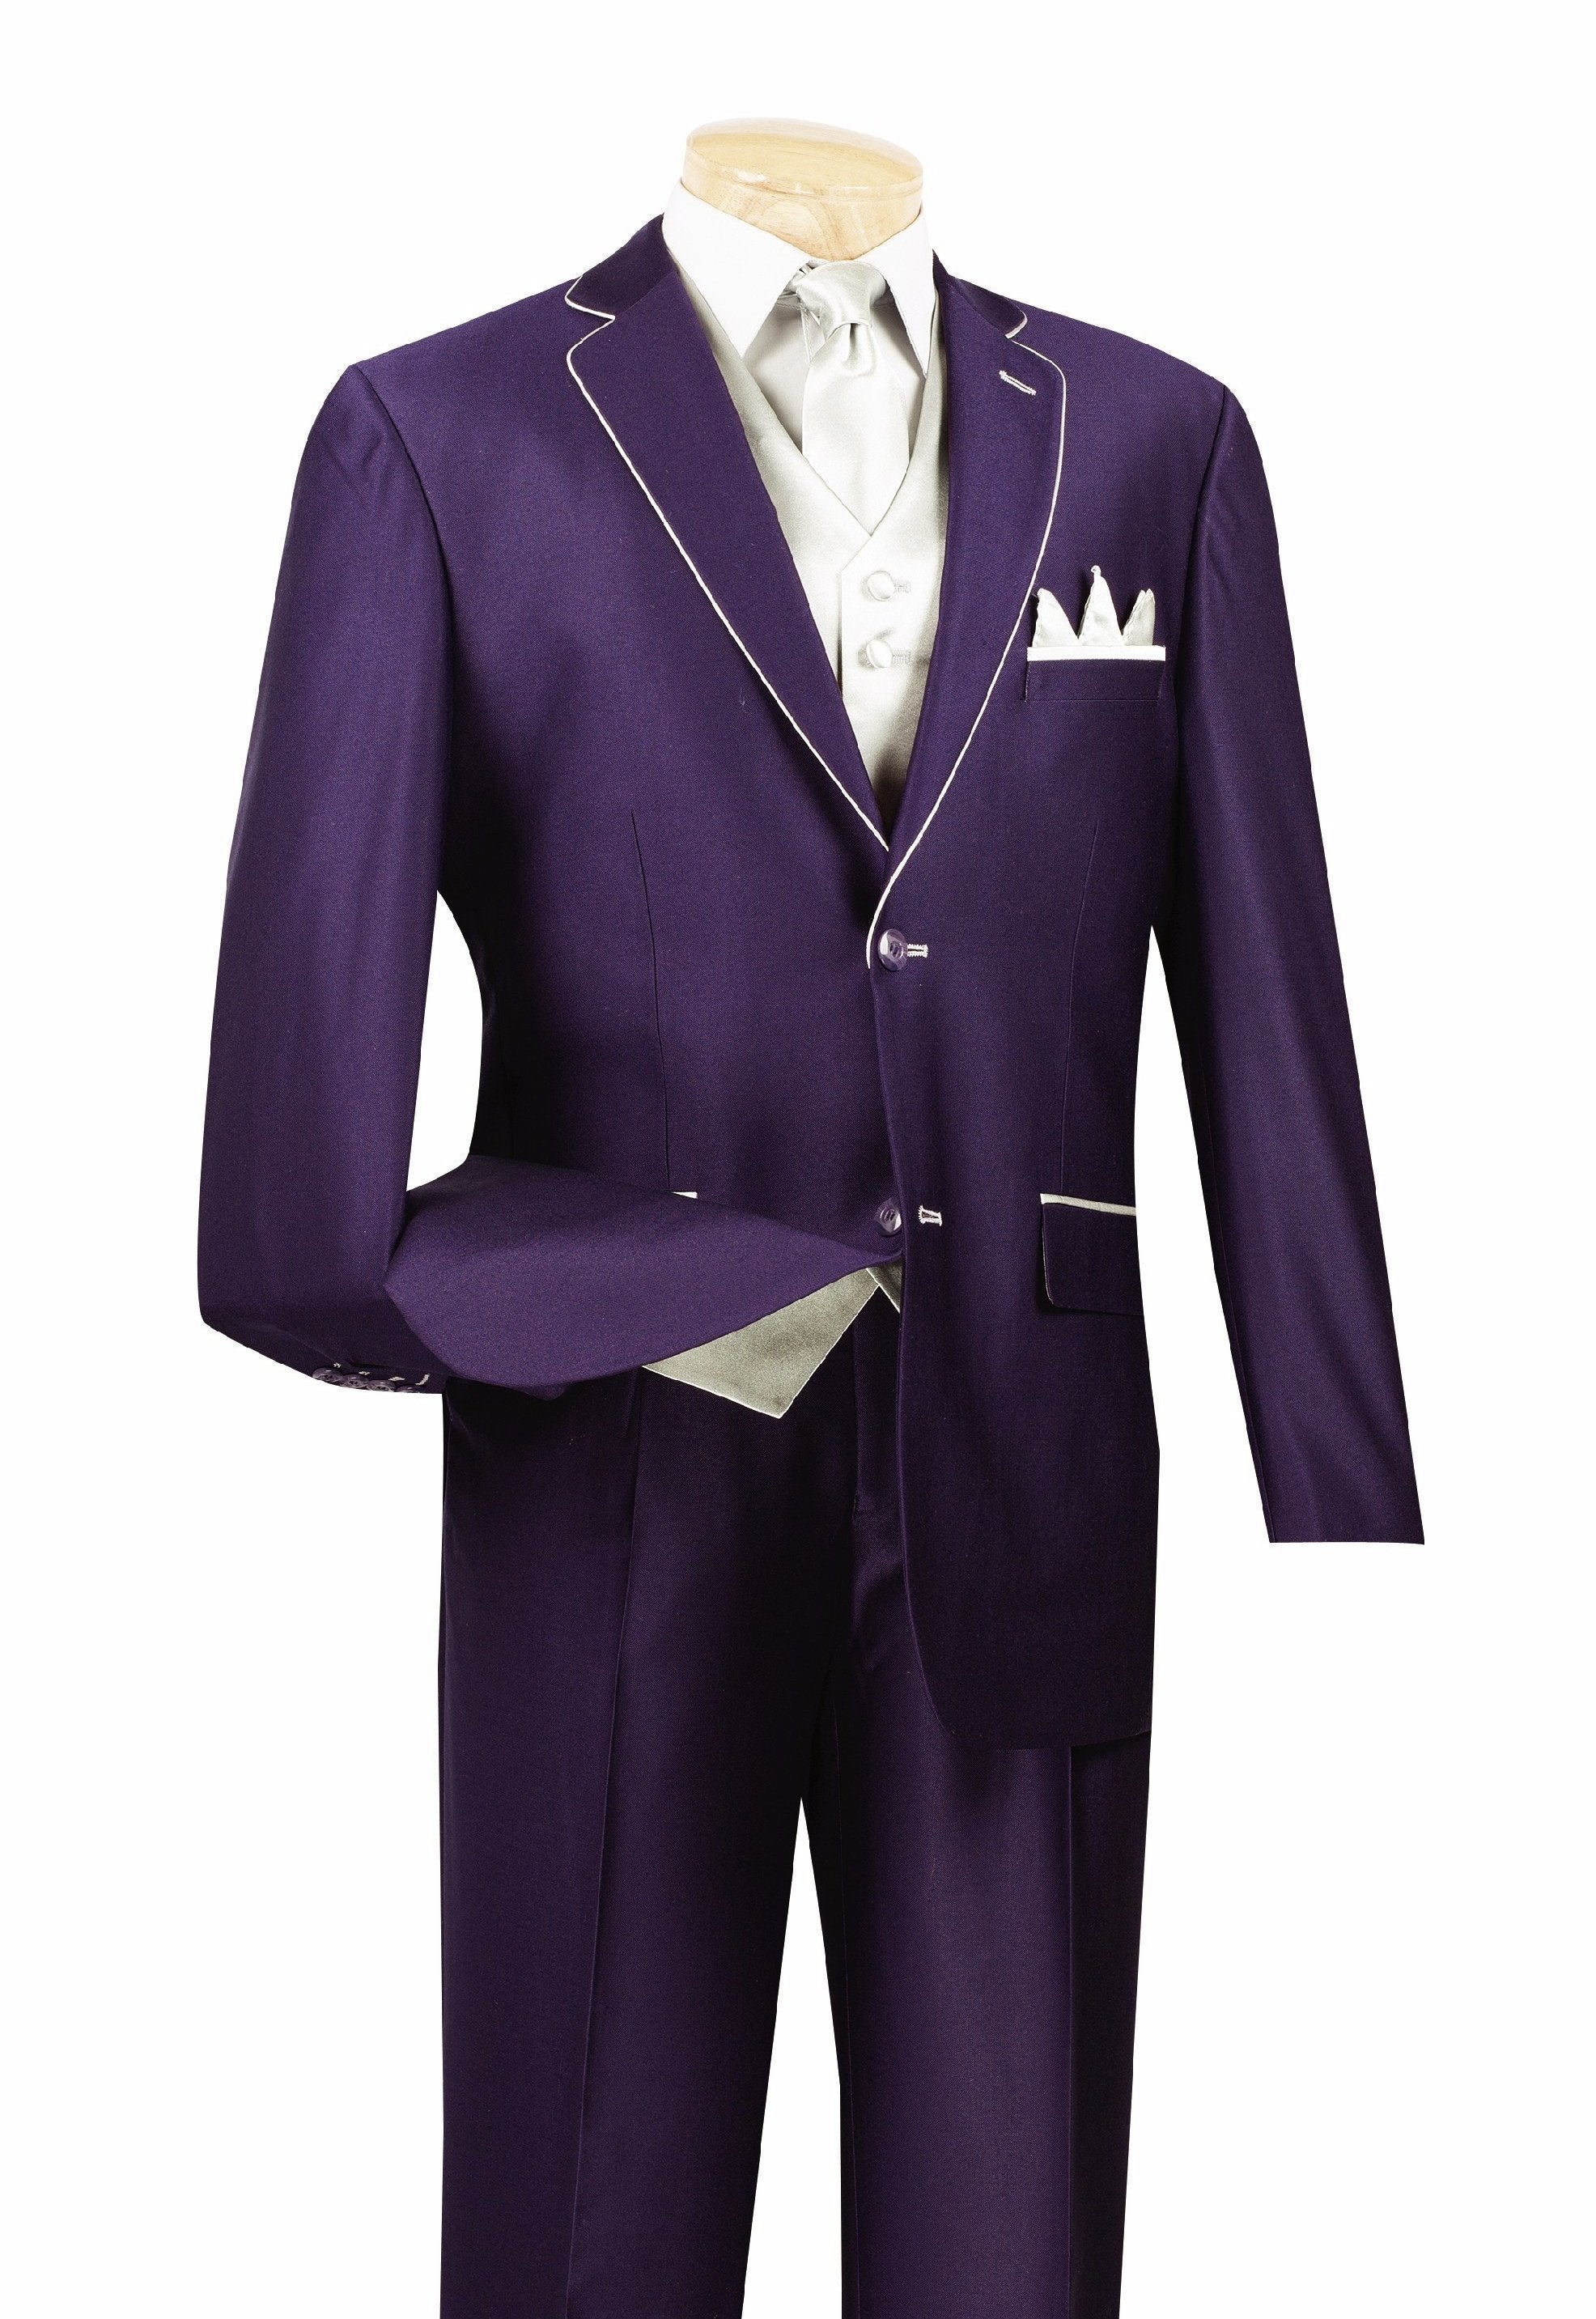 Michelangelo Collection - Prom Suit Regular Fit 3 Piece 2 Buttons Purple